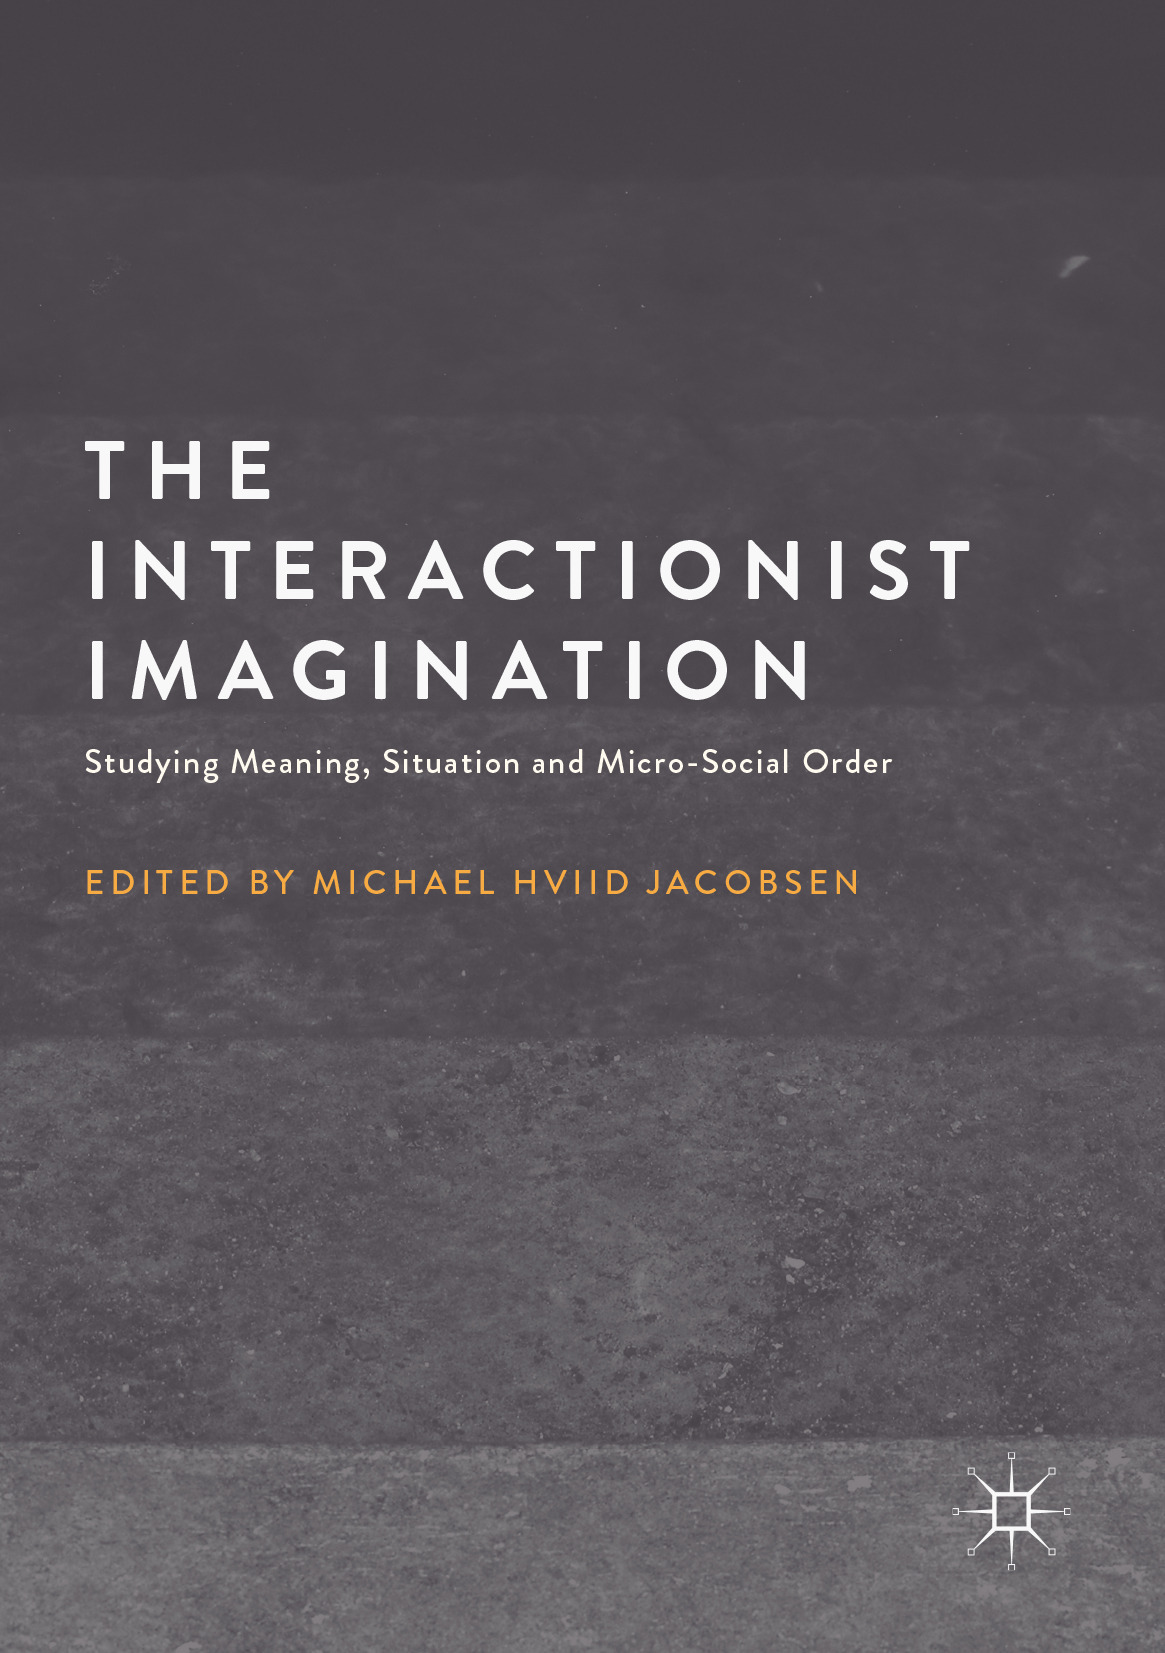 Jacobsen, Michael Hviid - The Interactionist Imagination, ebook